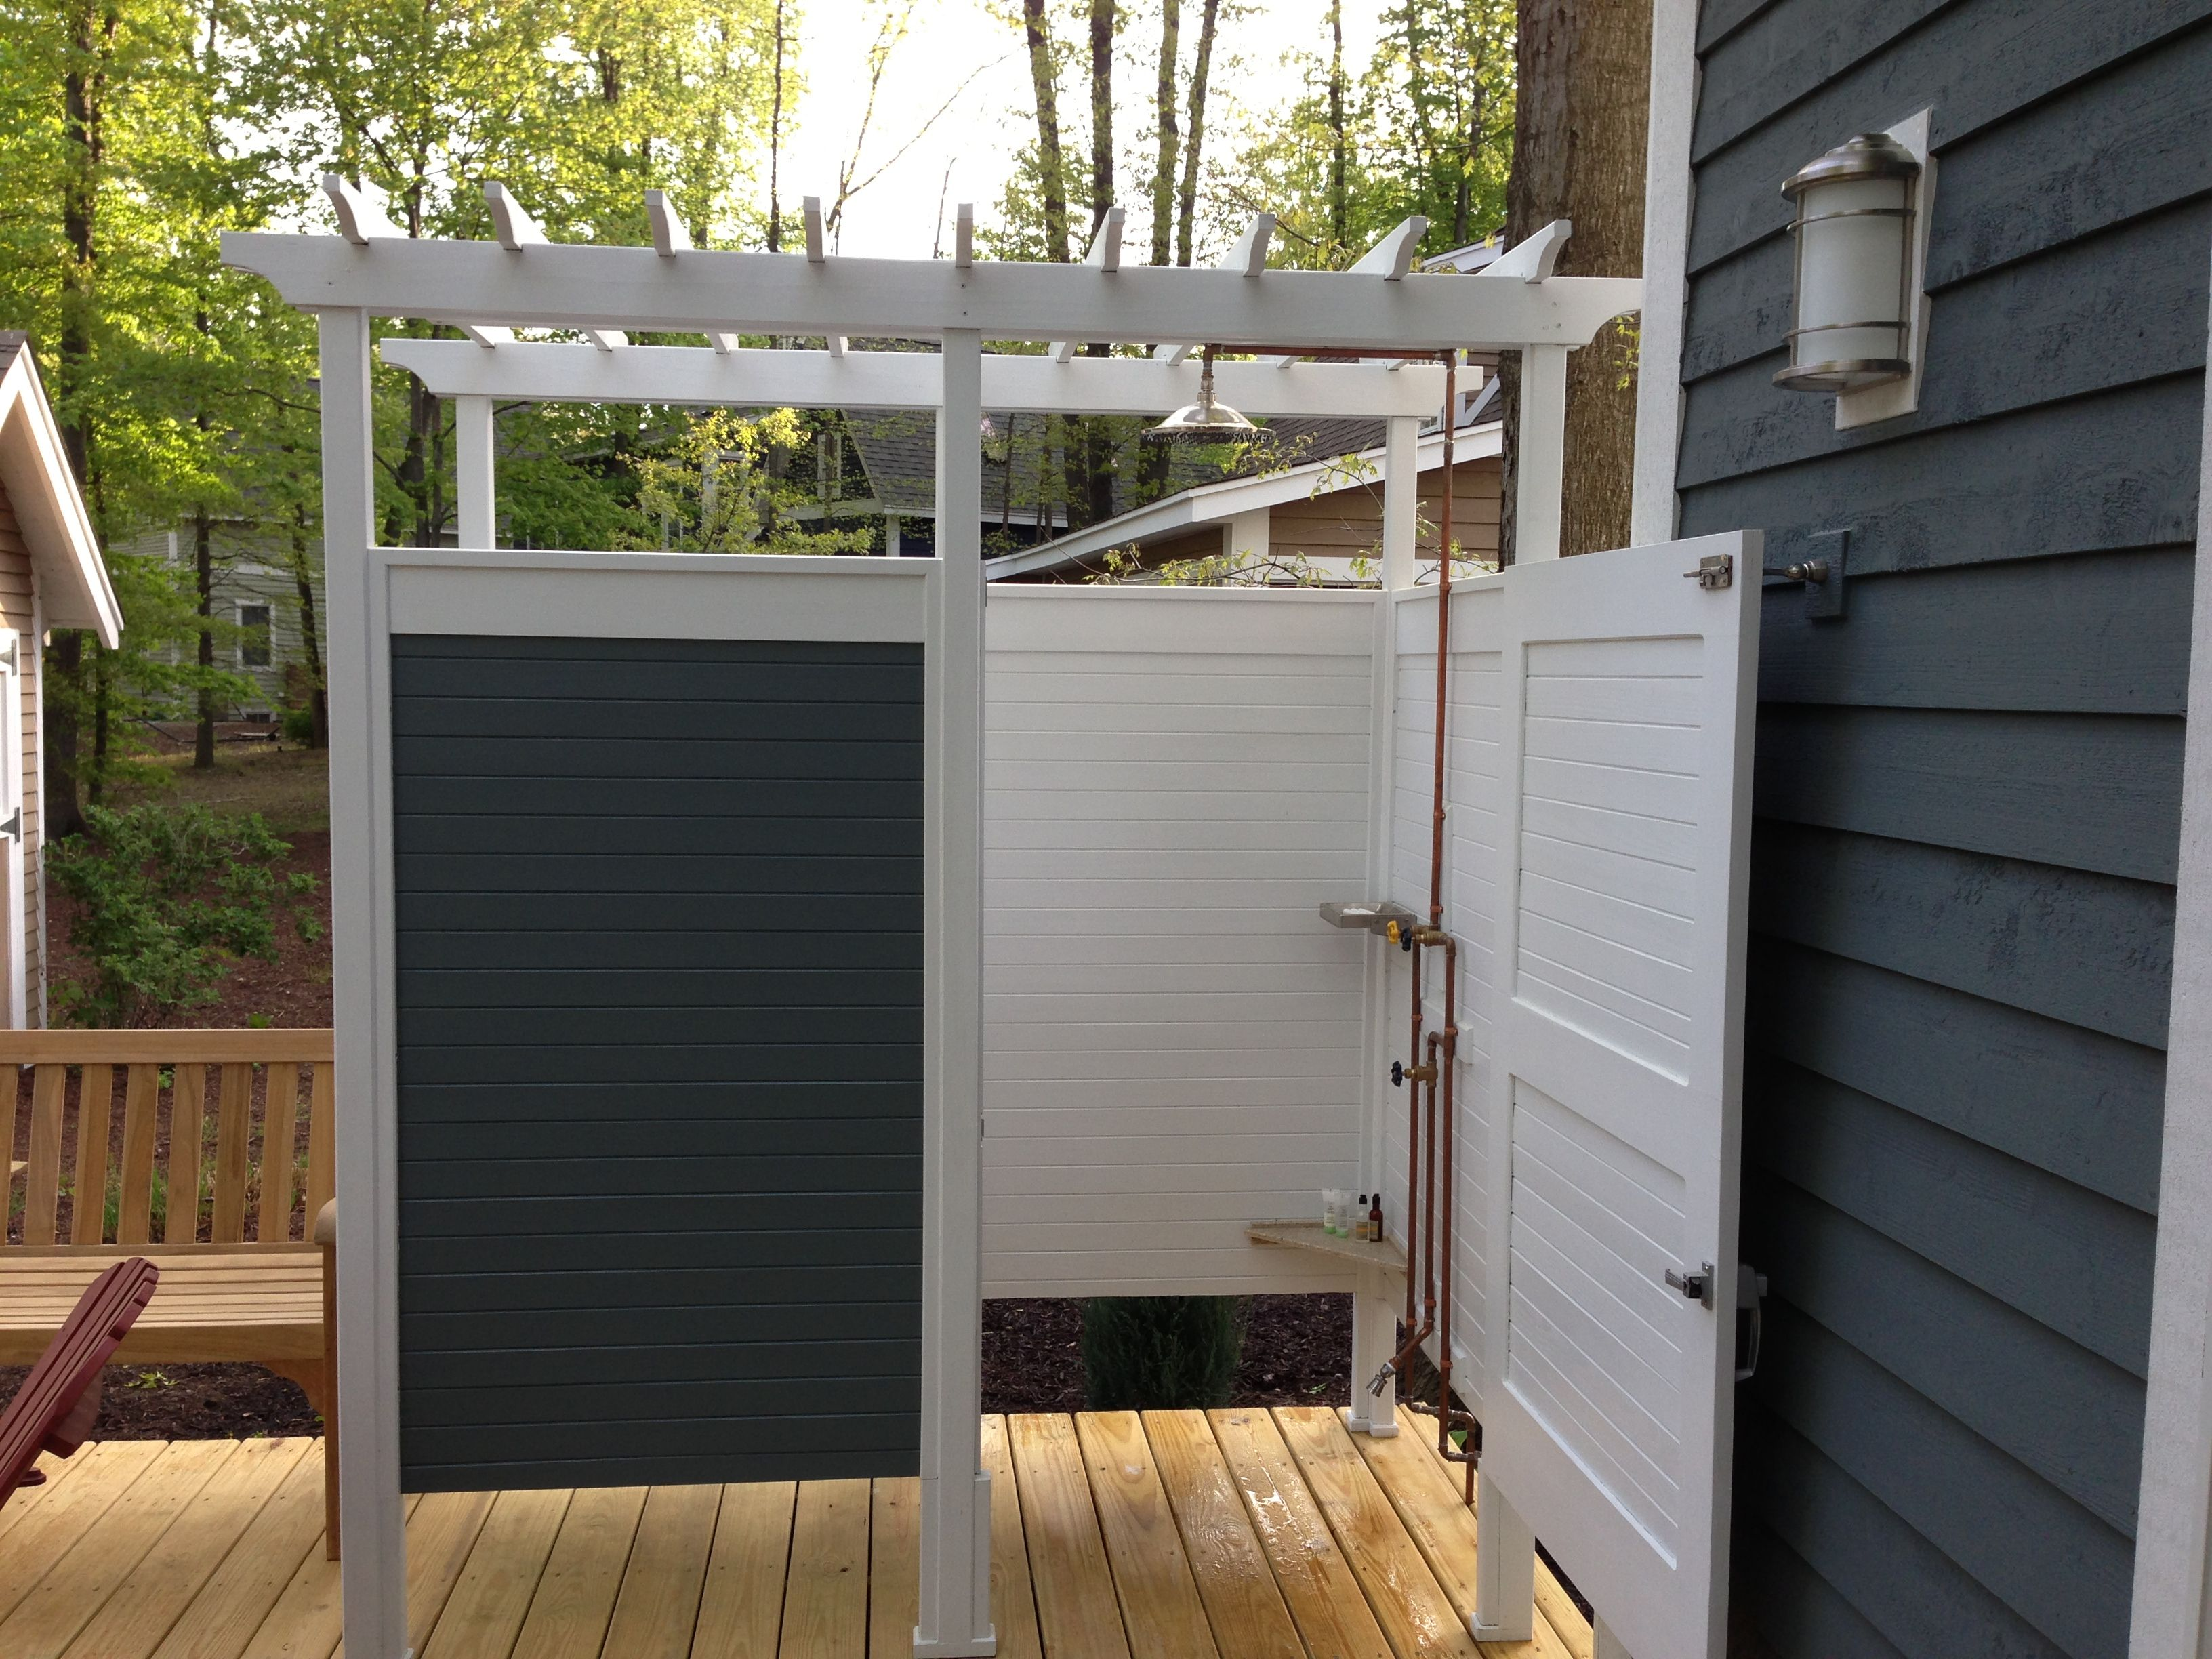 Awesome outdoor shower with pergola stuff our dad for Lake cottage bathroom ideas